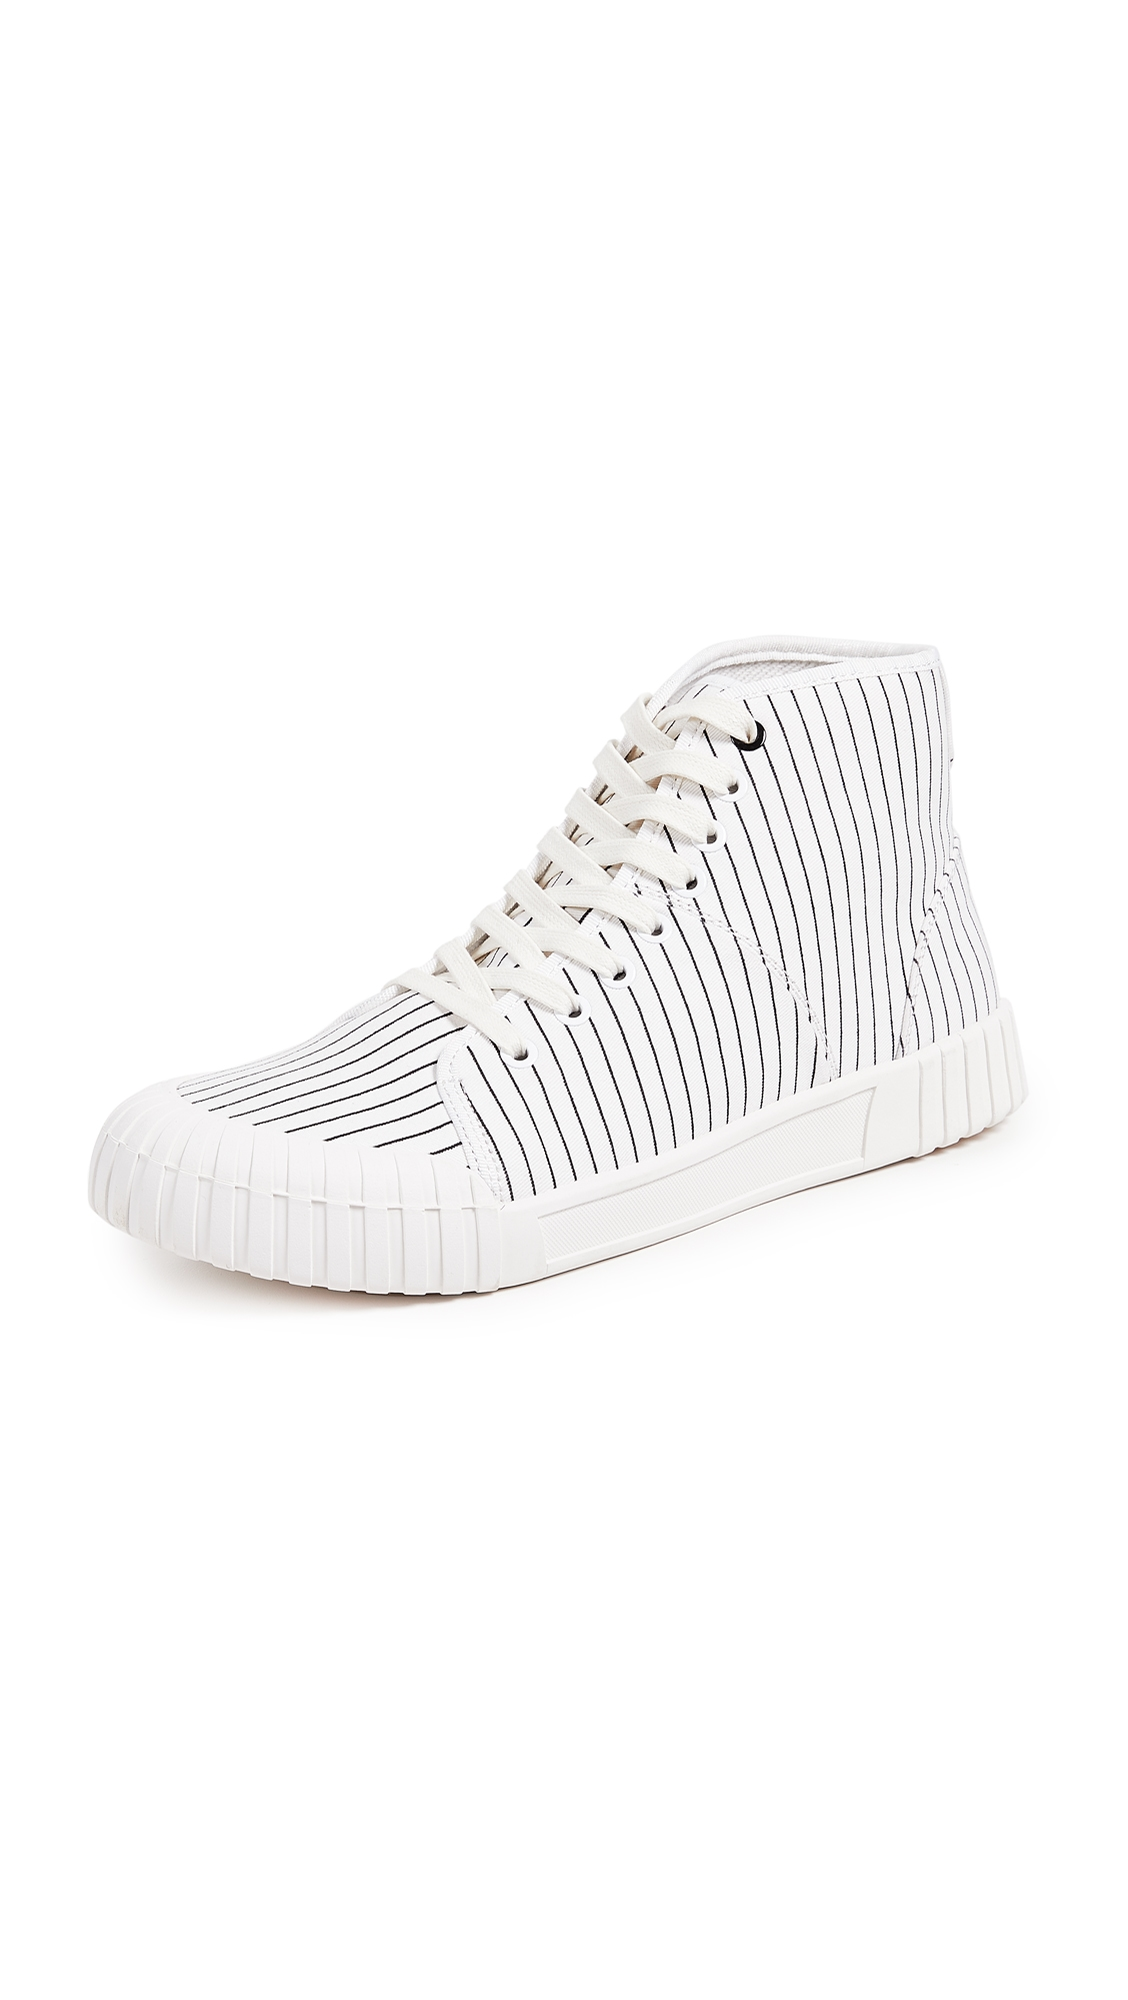 GOOD NEWS Hurler High Top Sneakers in White